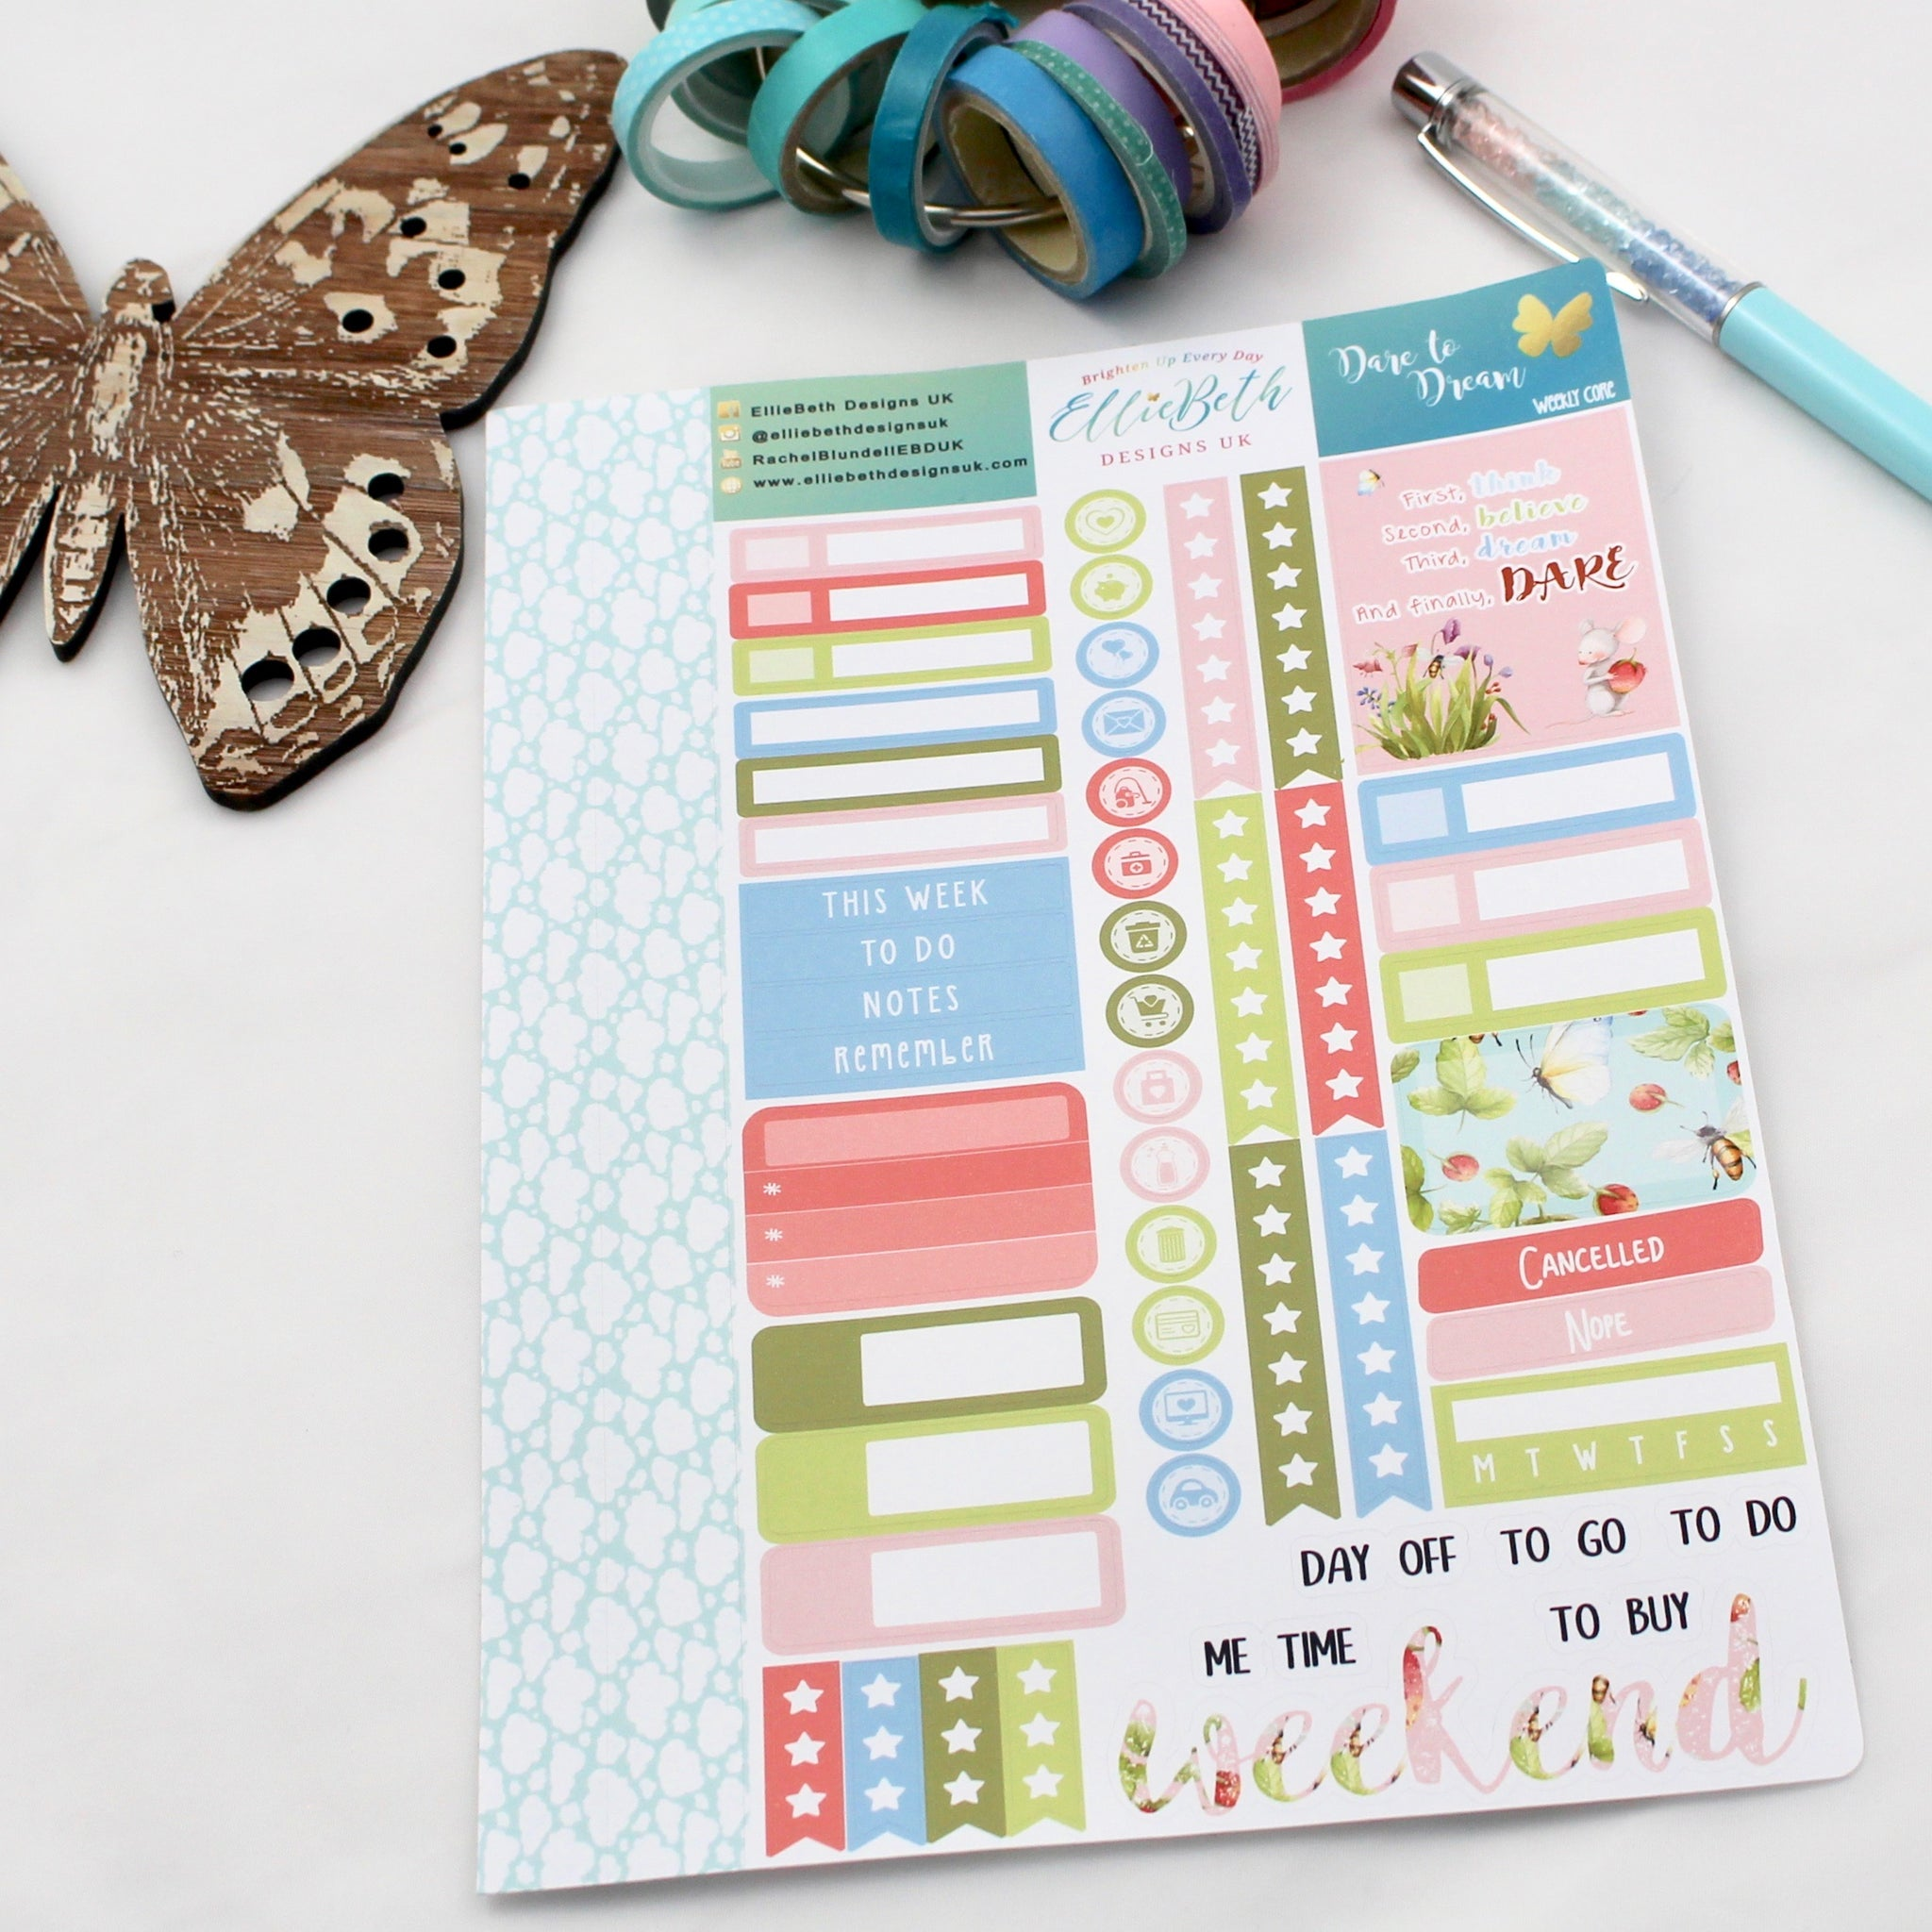 'Dare to Dream' - Core Sheet - A5 binder ready planner stickers